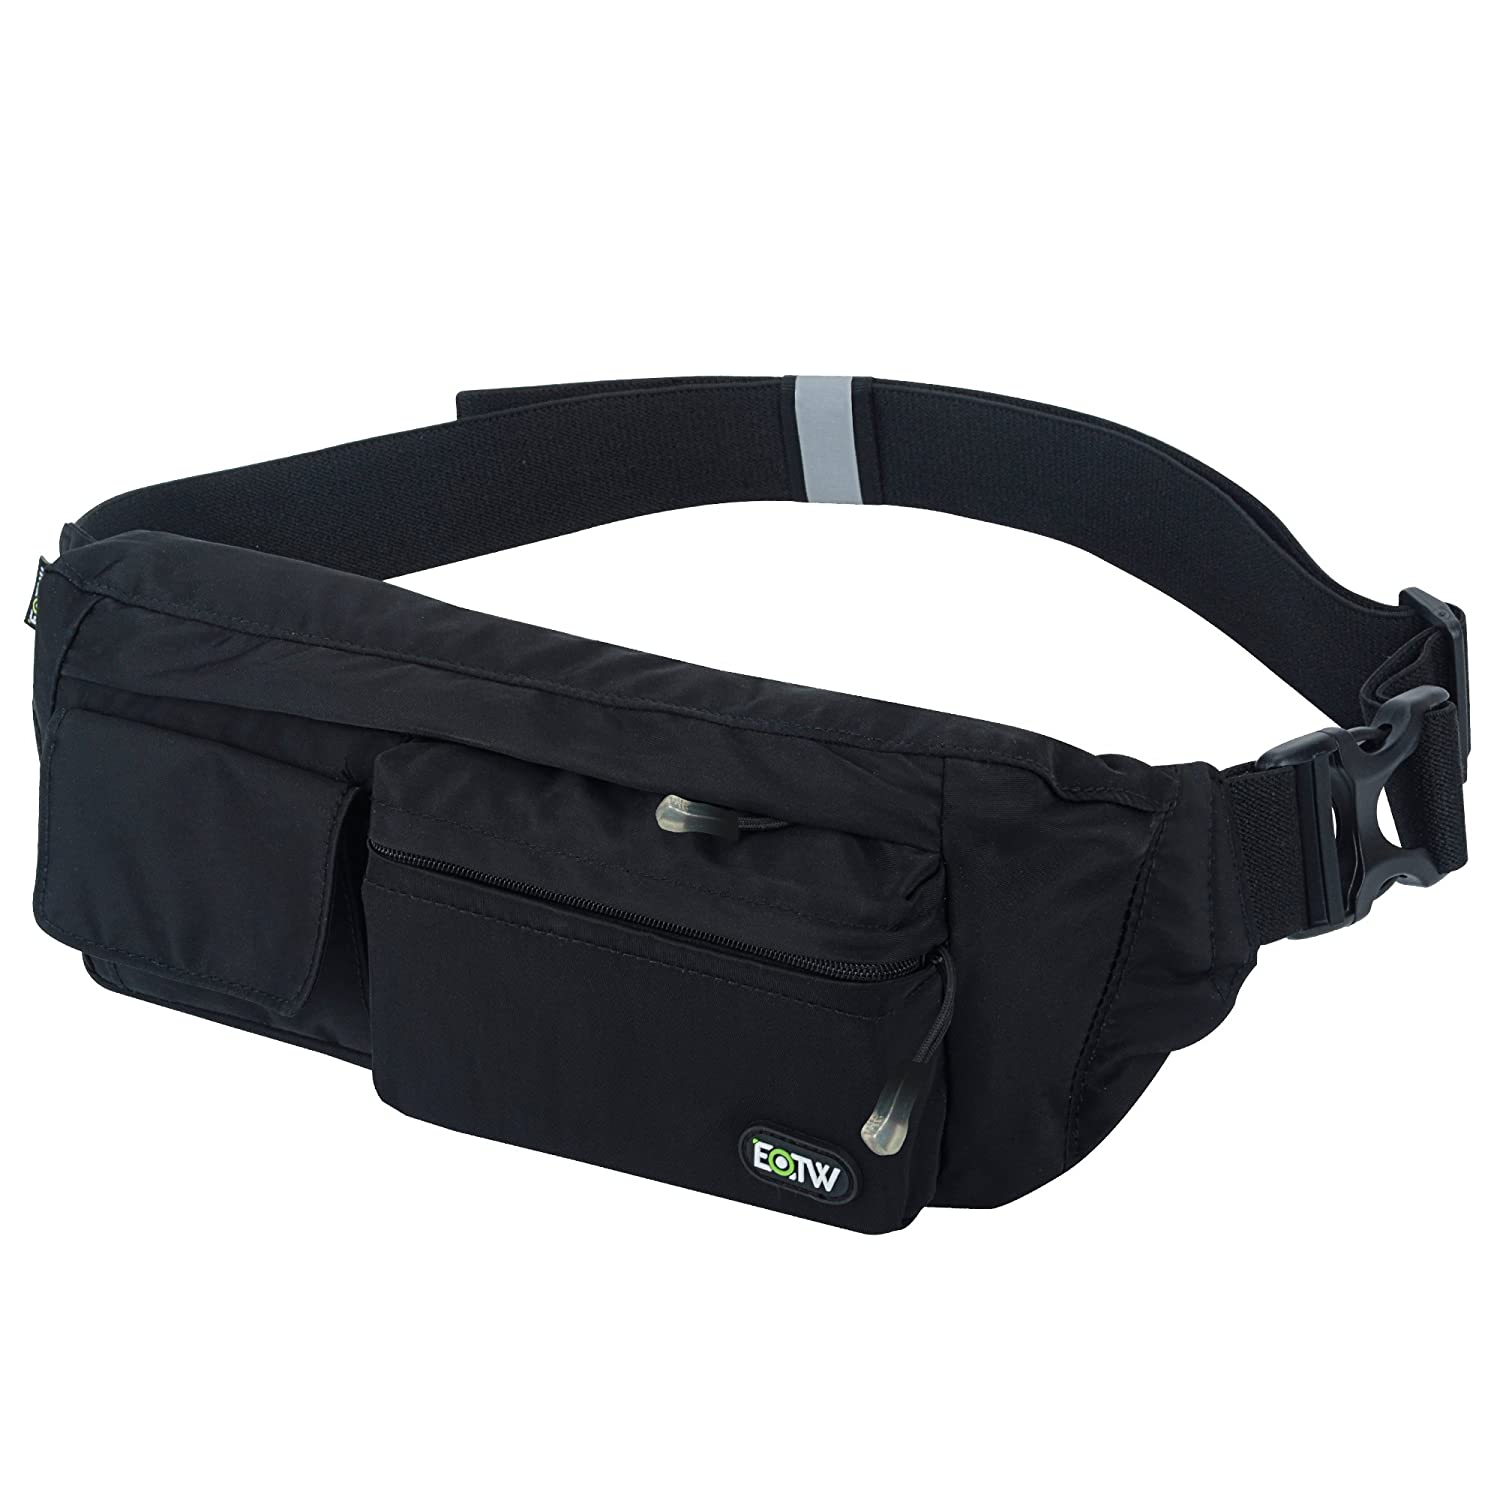 EOTW Fanny Pack Waist Bag Travel Pocket Sling Chest Shoulder Bag Phone  Holder Running Belt with Separate Pockets eb5a6a0f9031